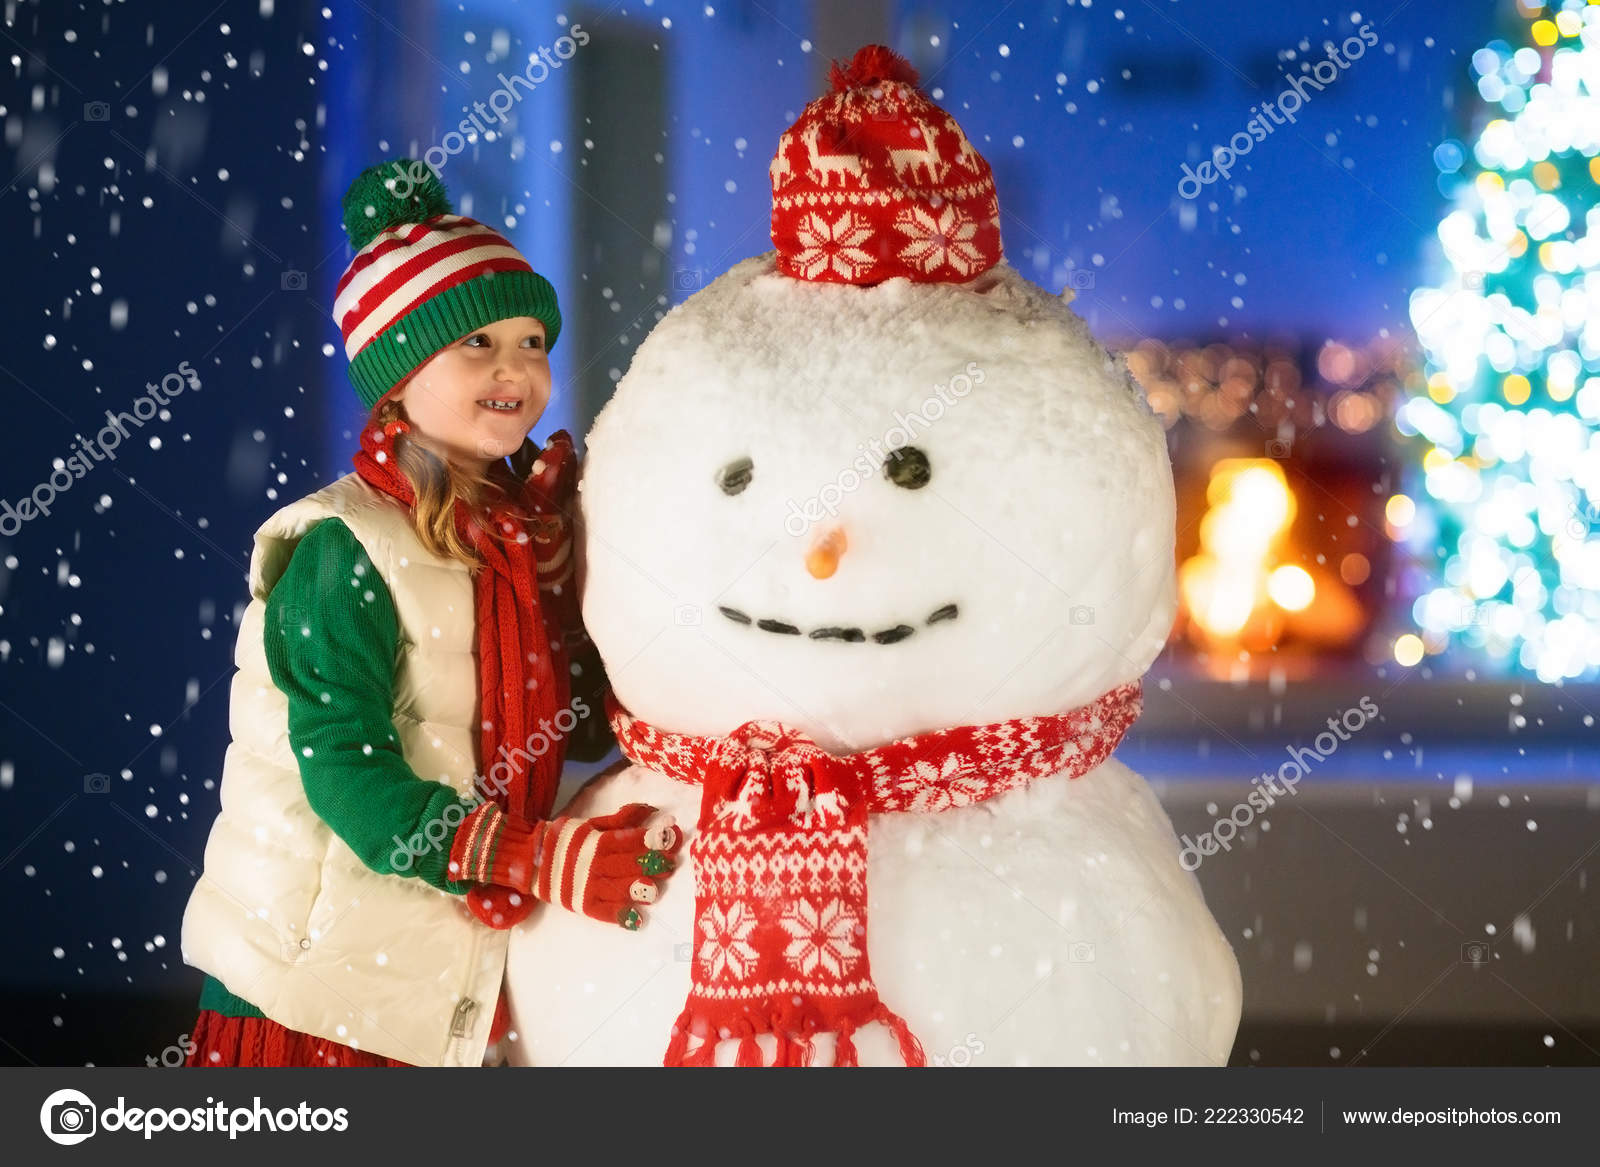 Kids Build Snowman Christmas Eve Child Presents Gifts Snowy